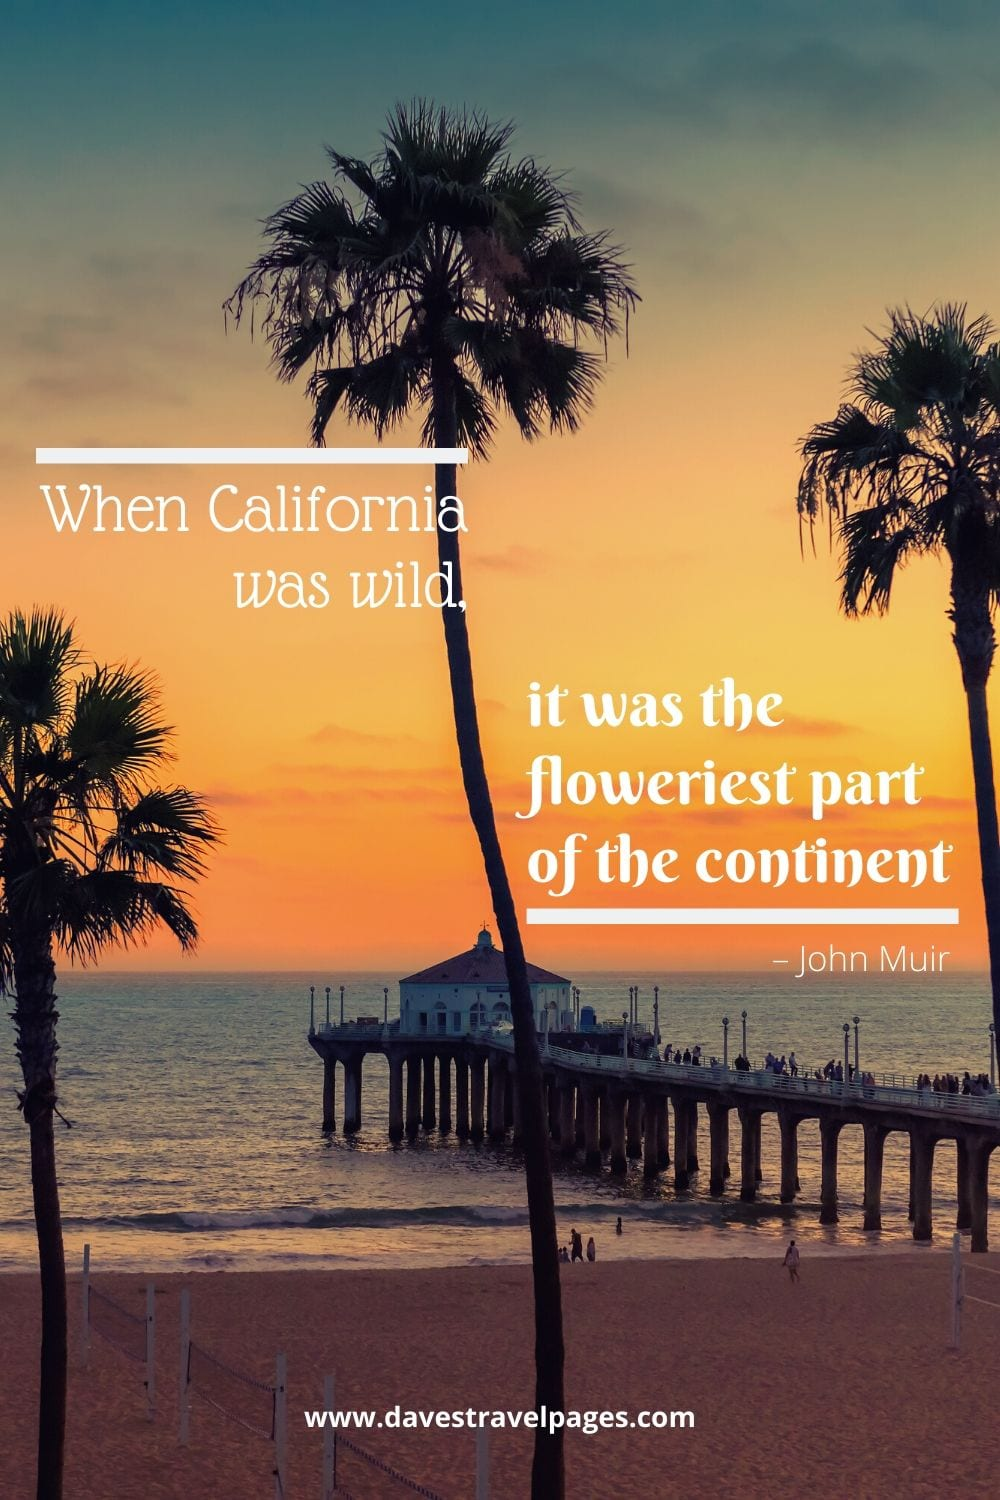 """""""When California was wild, it was the floweriest part of the continent."""" – John Muir"""